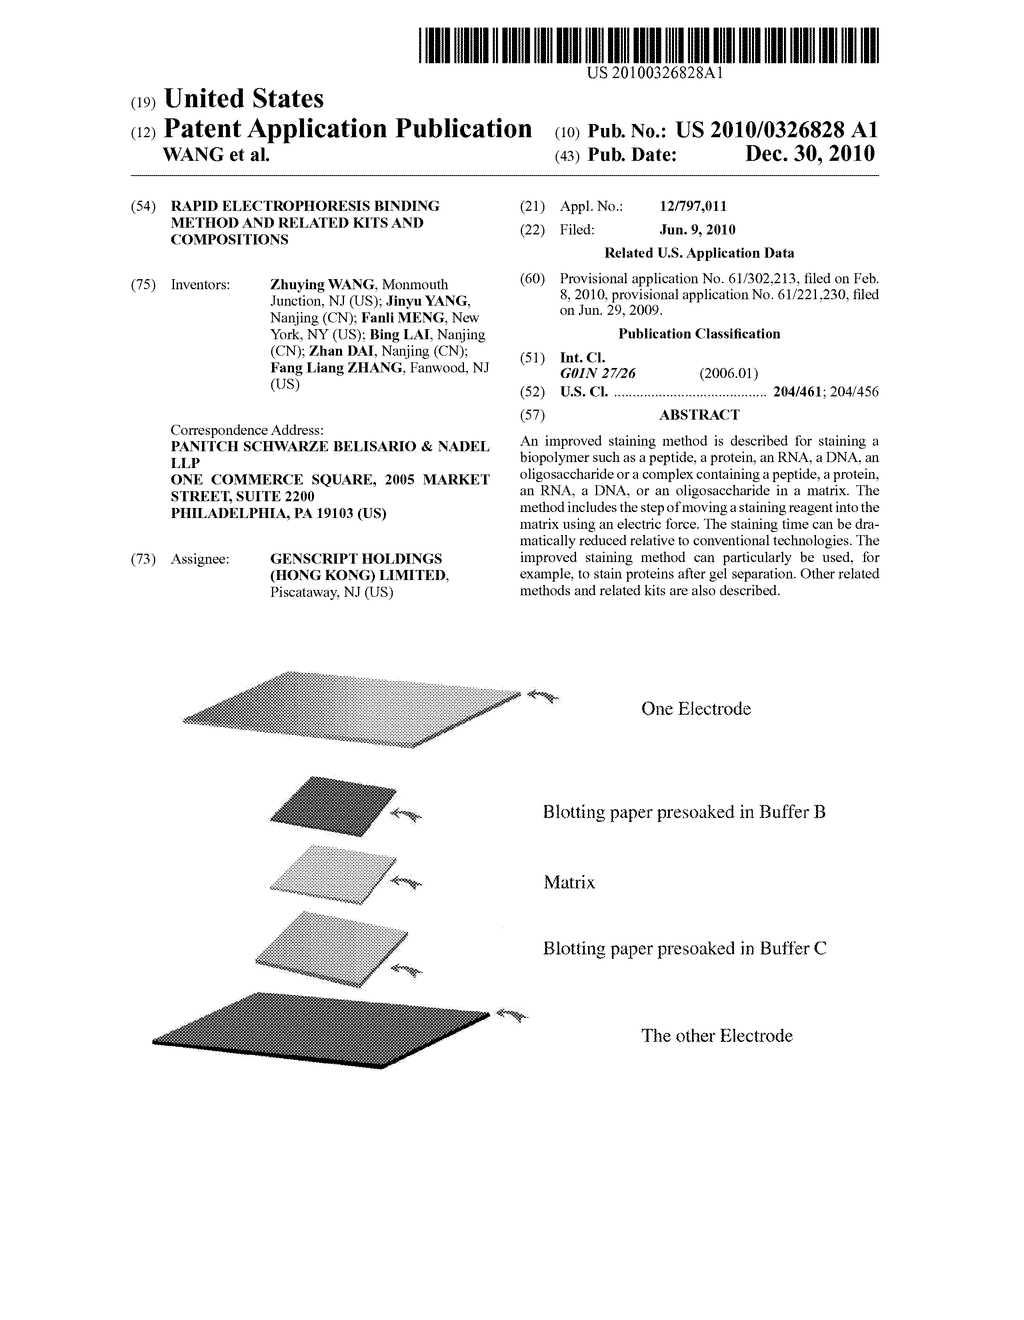 RAPID ELECTROPHORESIS BINDING METHOD AND RELATED KITS AND COMPOSITIONS - diagram, schematic, and image 01